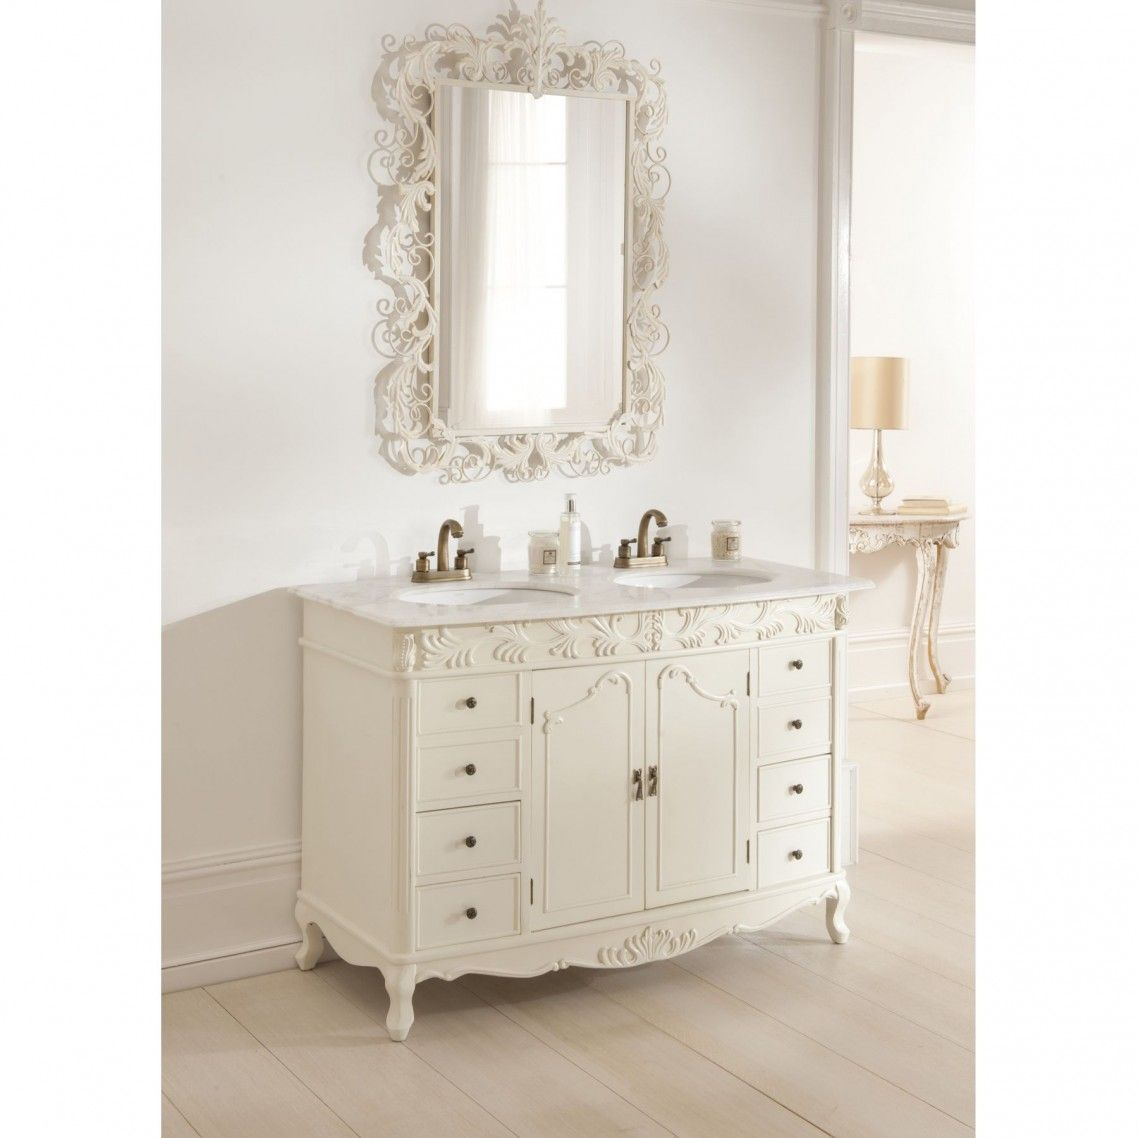 Double Vanity Mirror Double Antique White French Vanity Vanity Mirror Ideas  Dresser With Sink And Classic - Double Vanity Mirror Double Antique White French Vanity Vanity